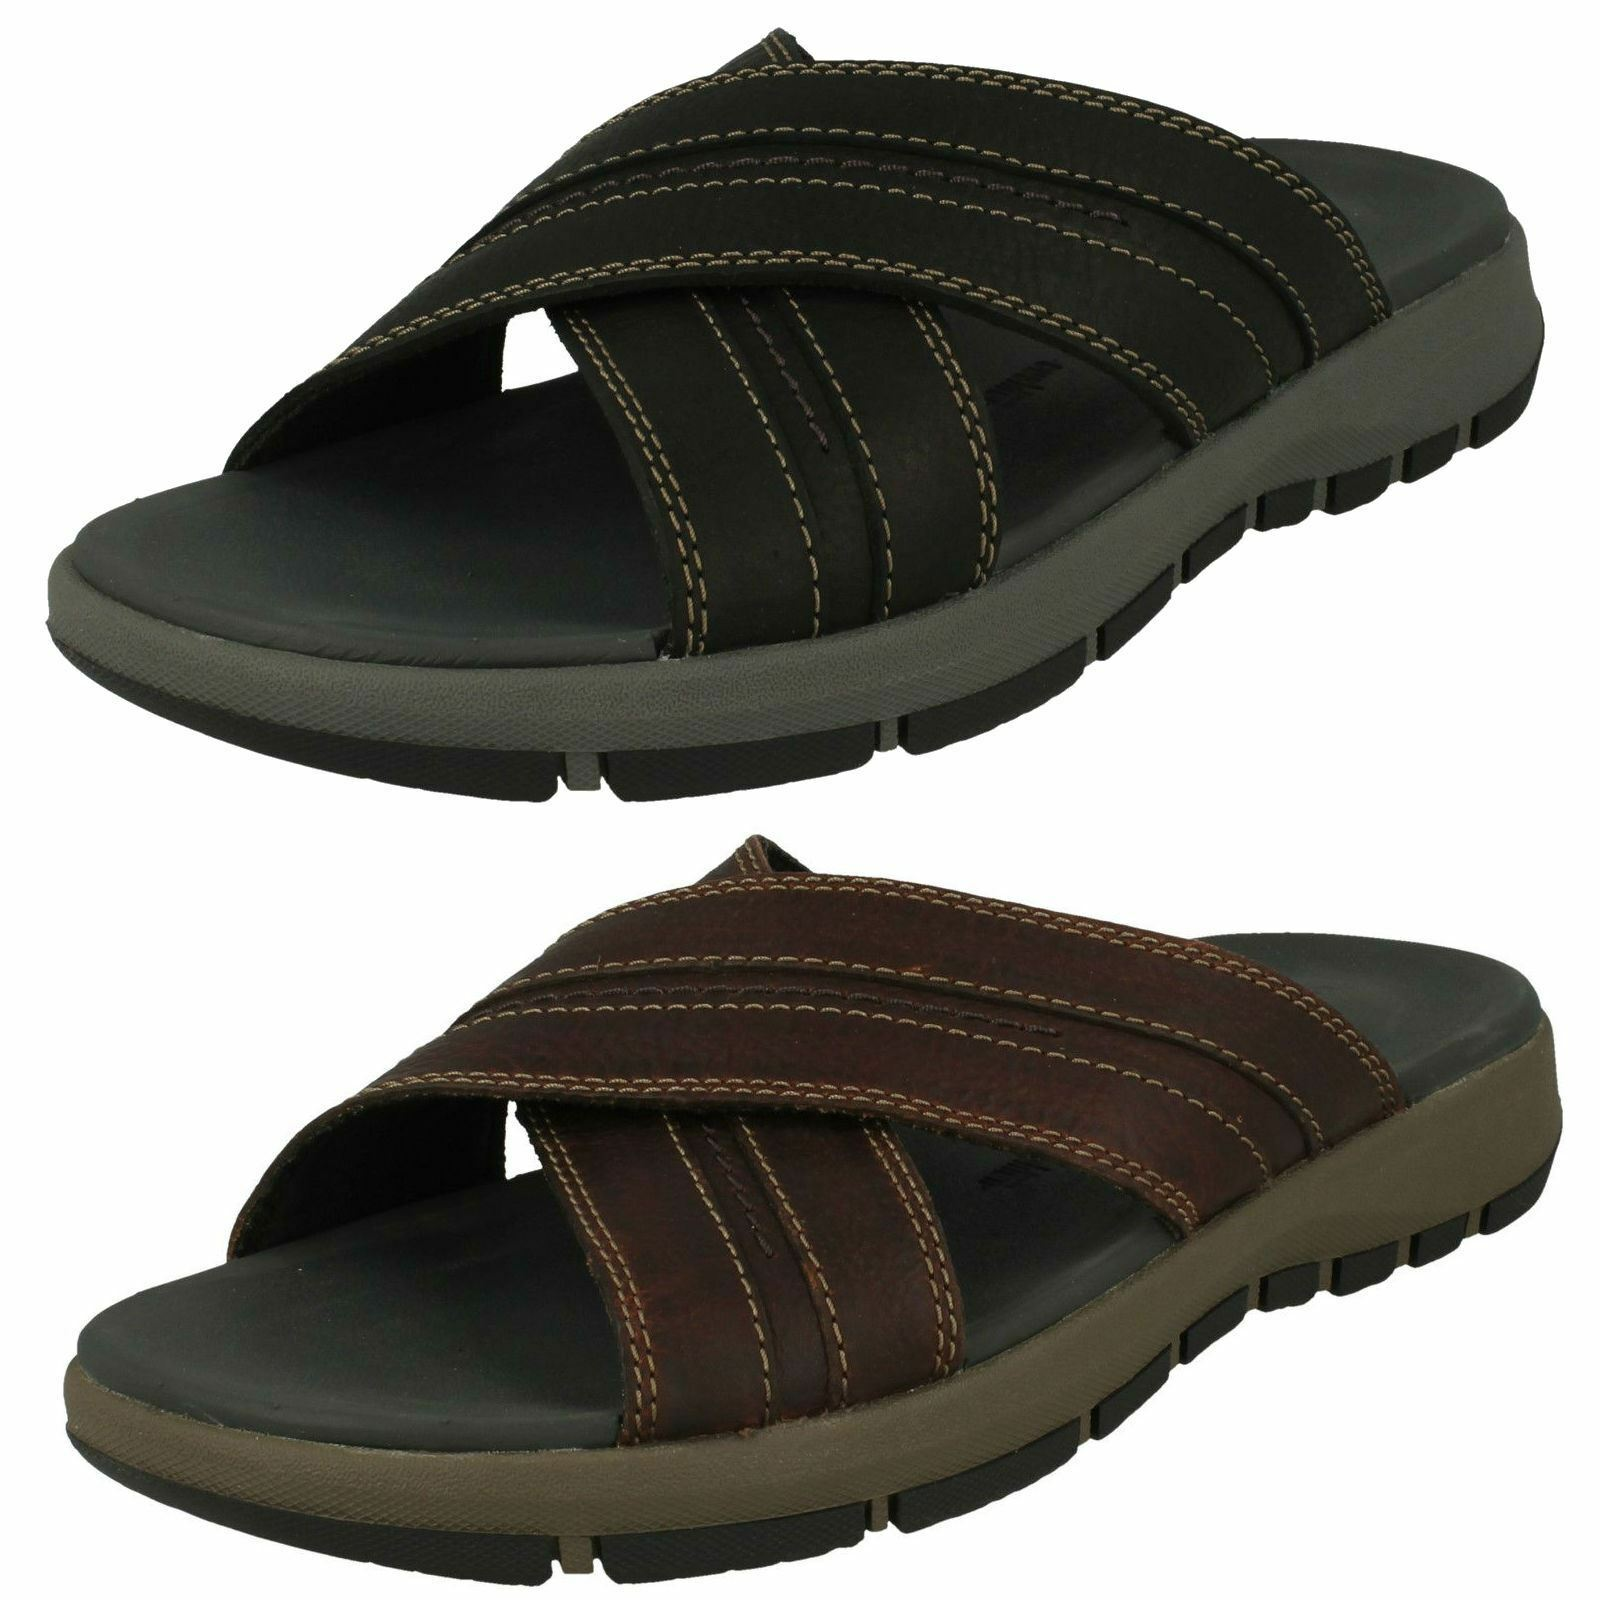 Man's/Woman's Mens Clarks Slip On Leather Cushion Soft Cross Strap Cross Mule Sandals - Brixby Cross Strap Various styles Attractive fashion Popular tide shoes AN499 70b060